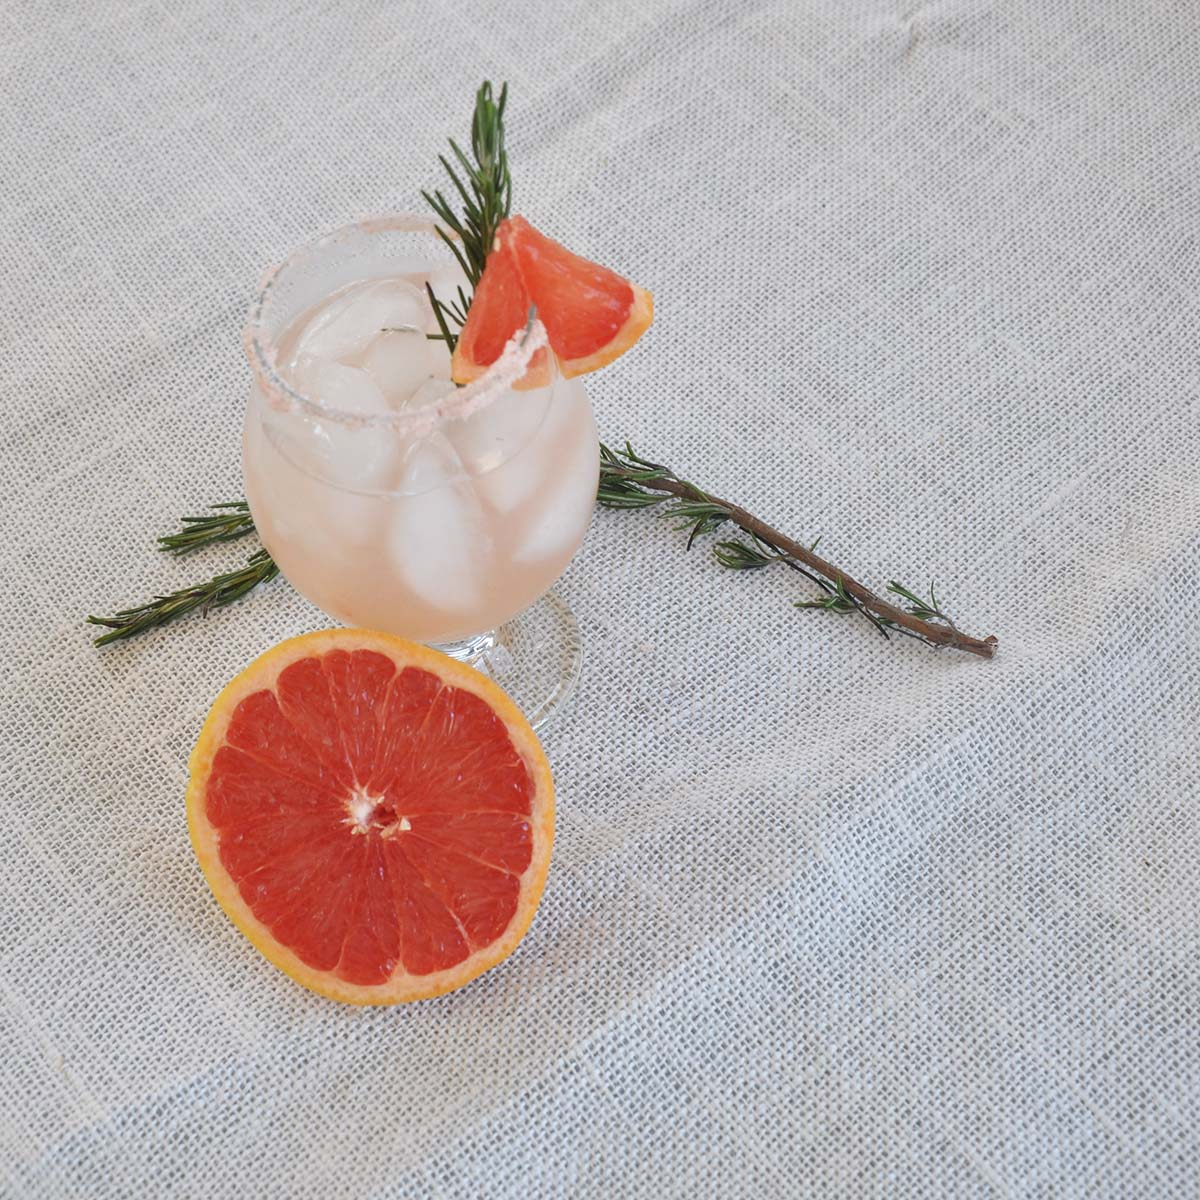 another shot of the rosemary infused salty dog cocktail